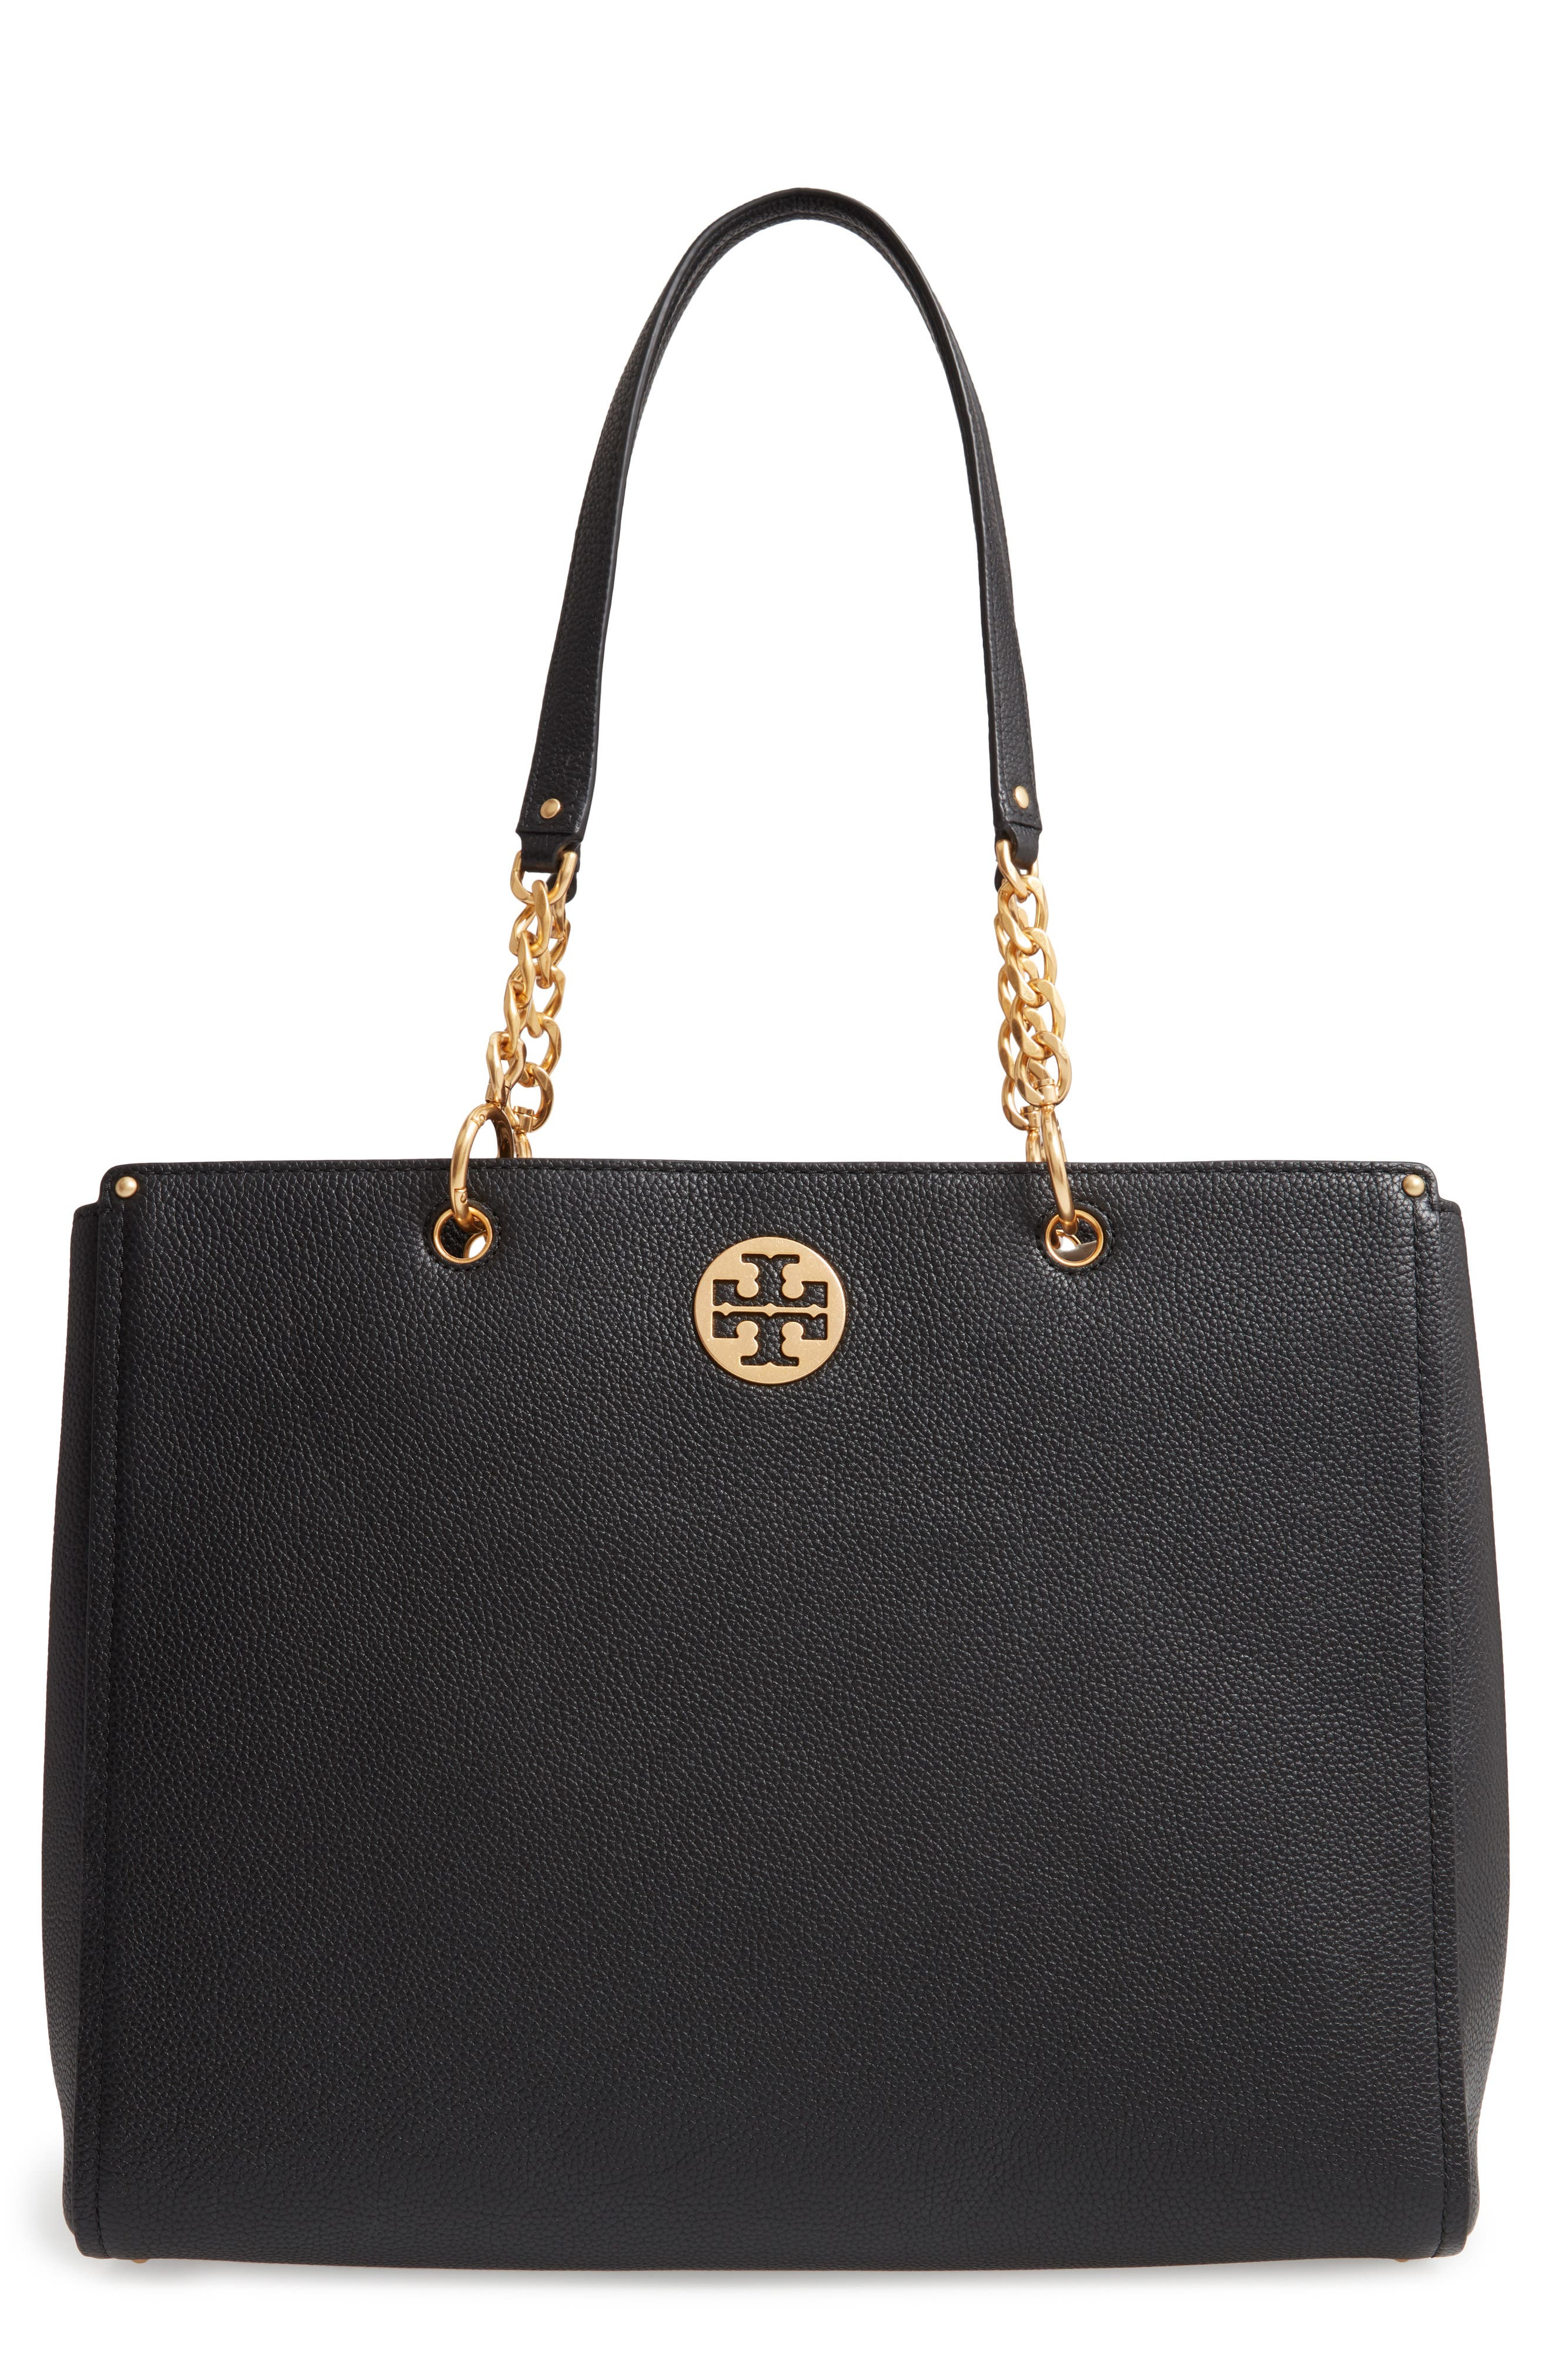 Tory Burch Totes Everly Leather Tote